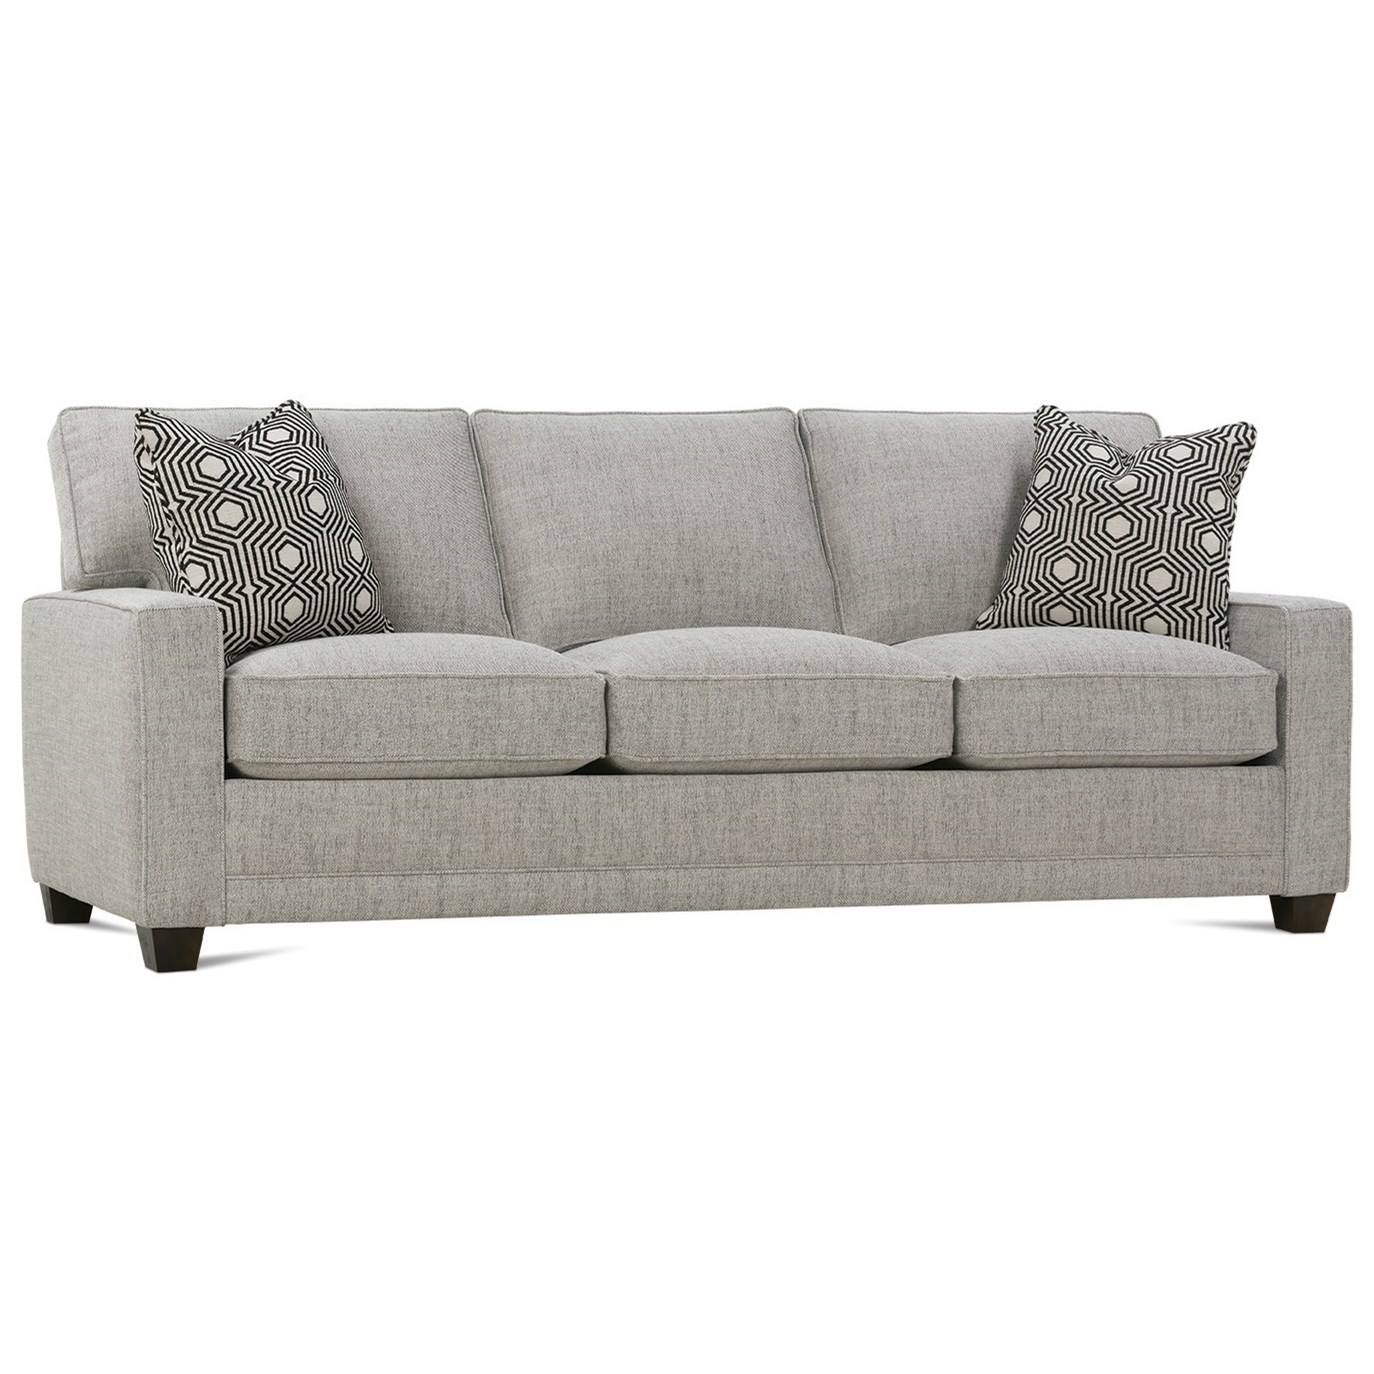 Rowe My Style I Customizable Sofa With Track Arms Tapered